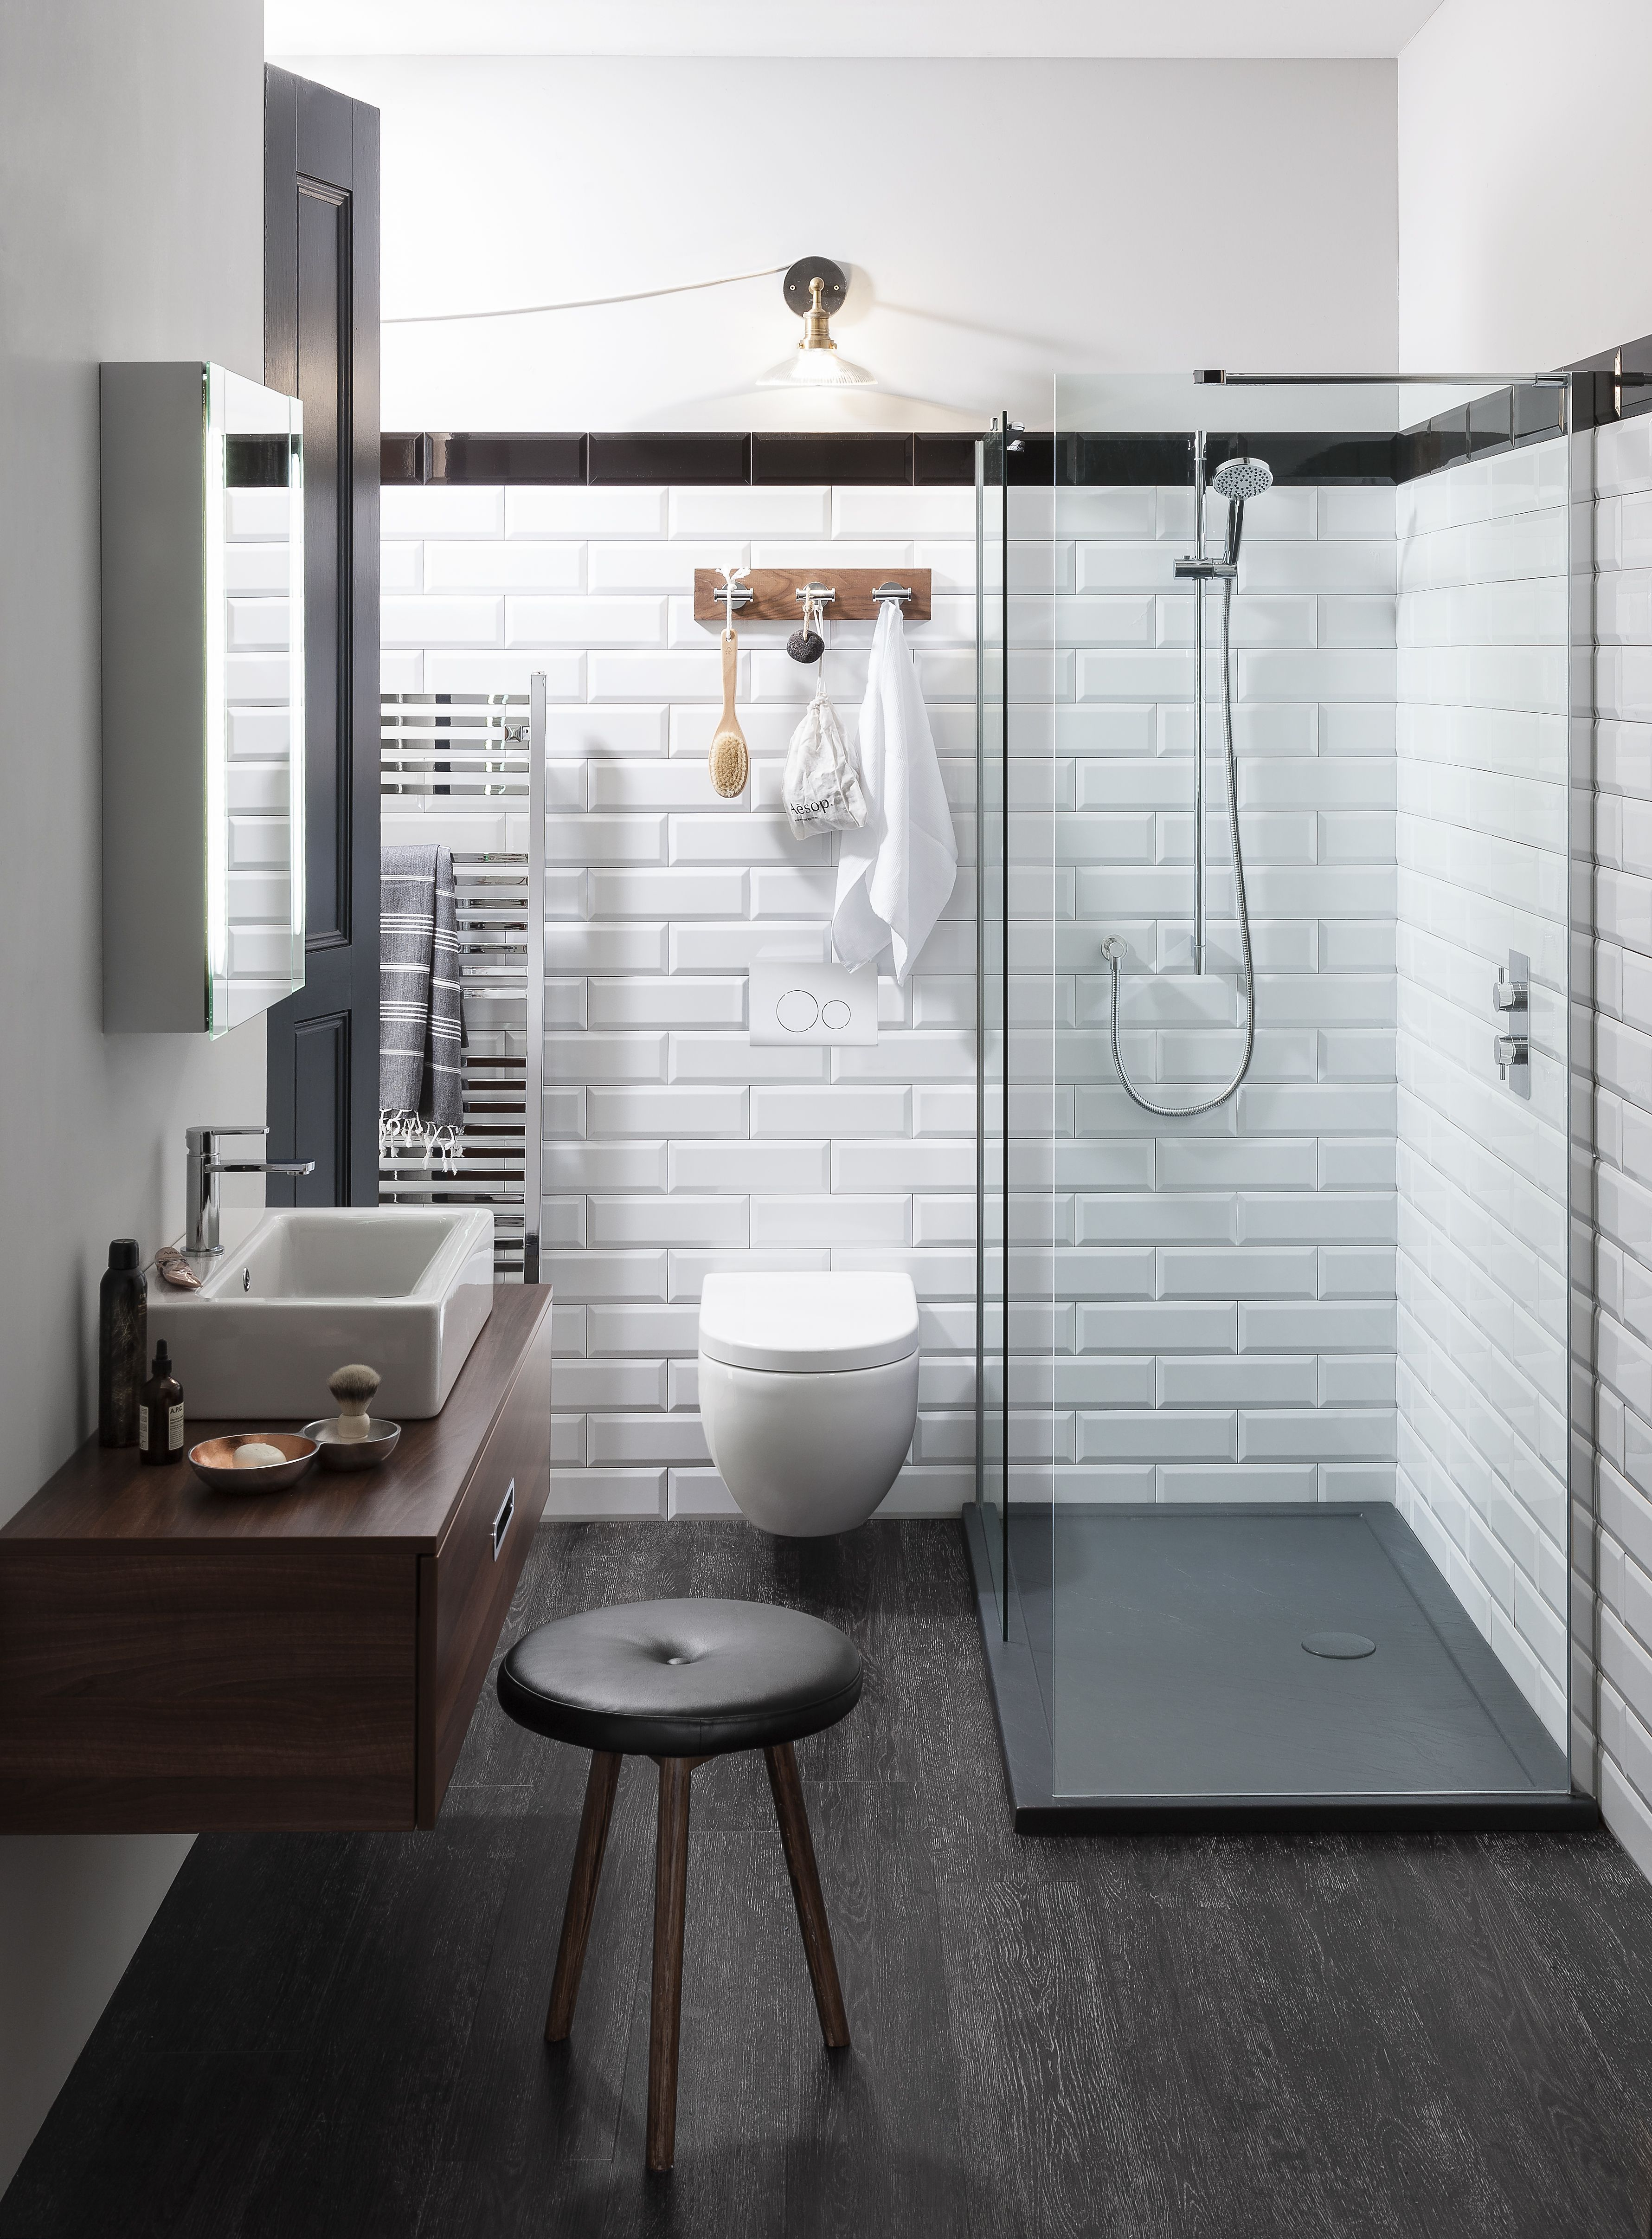 New urban bathrooms All bathroom fittings & fixtures from